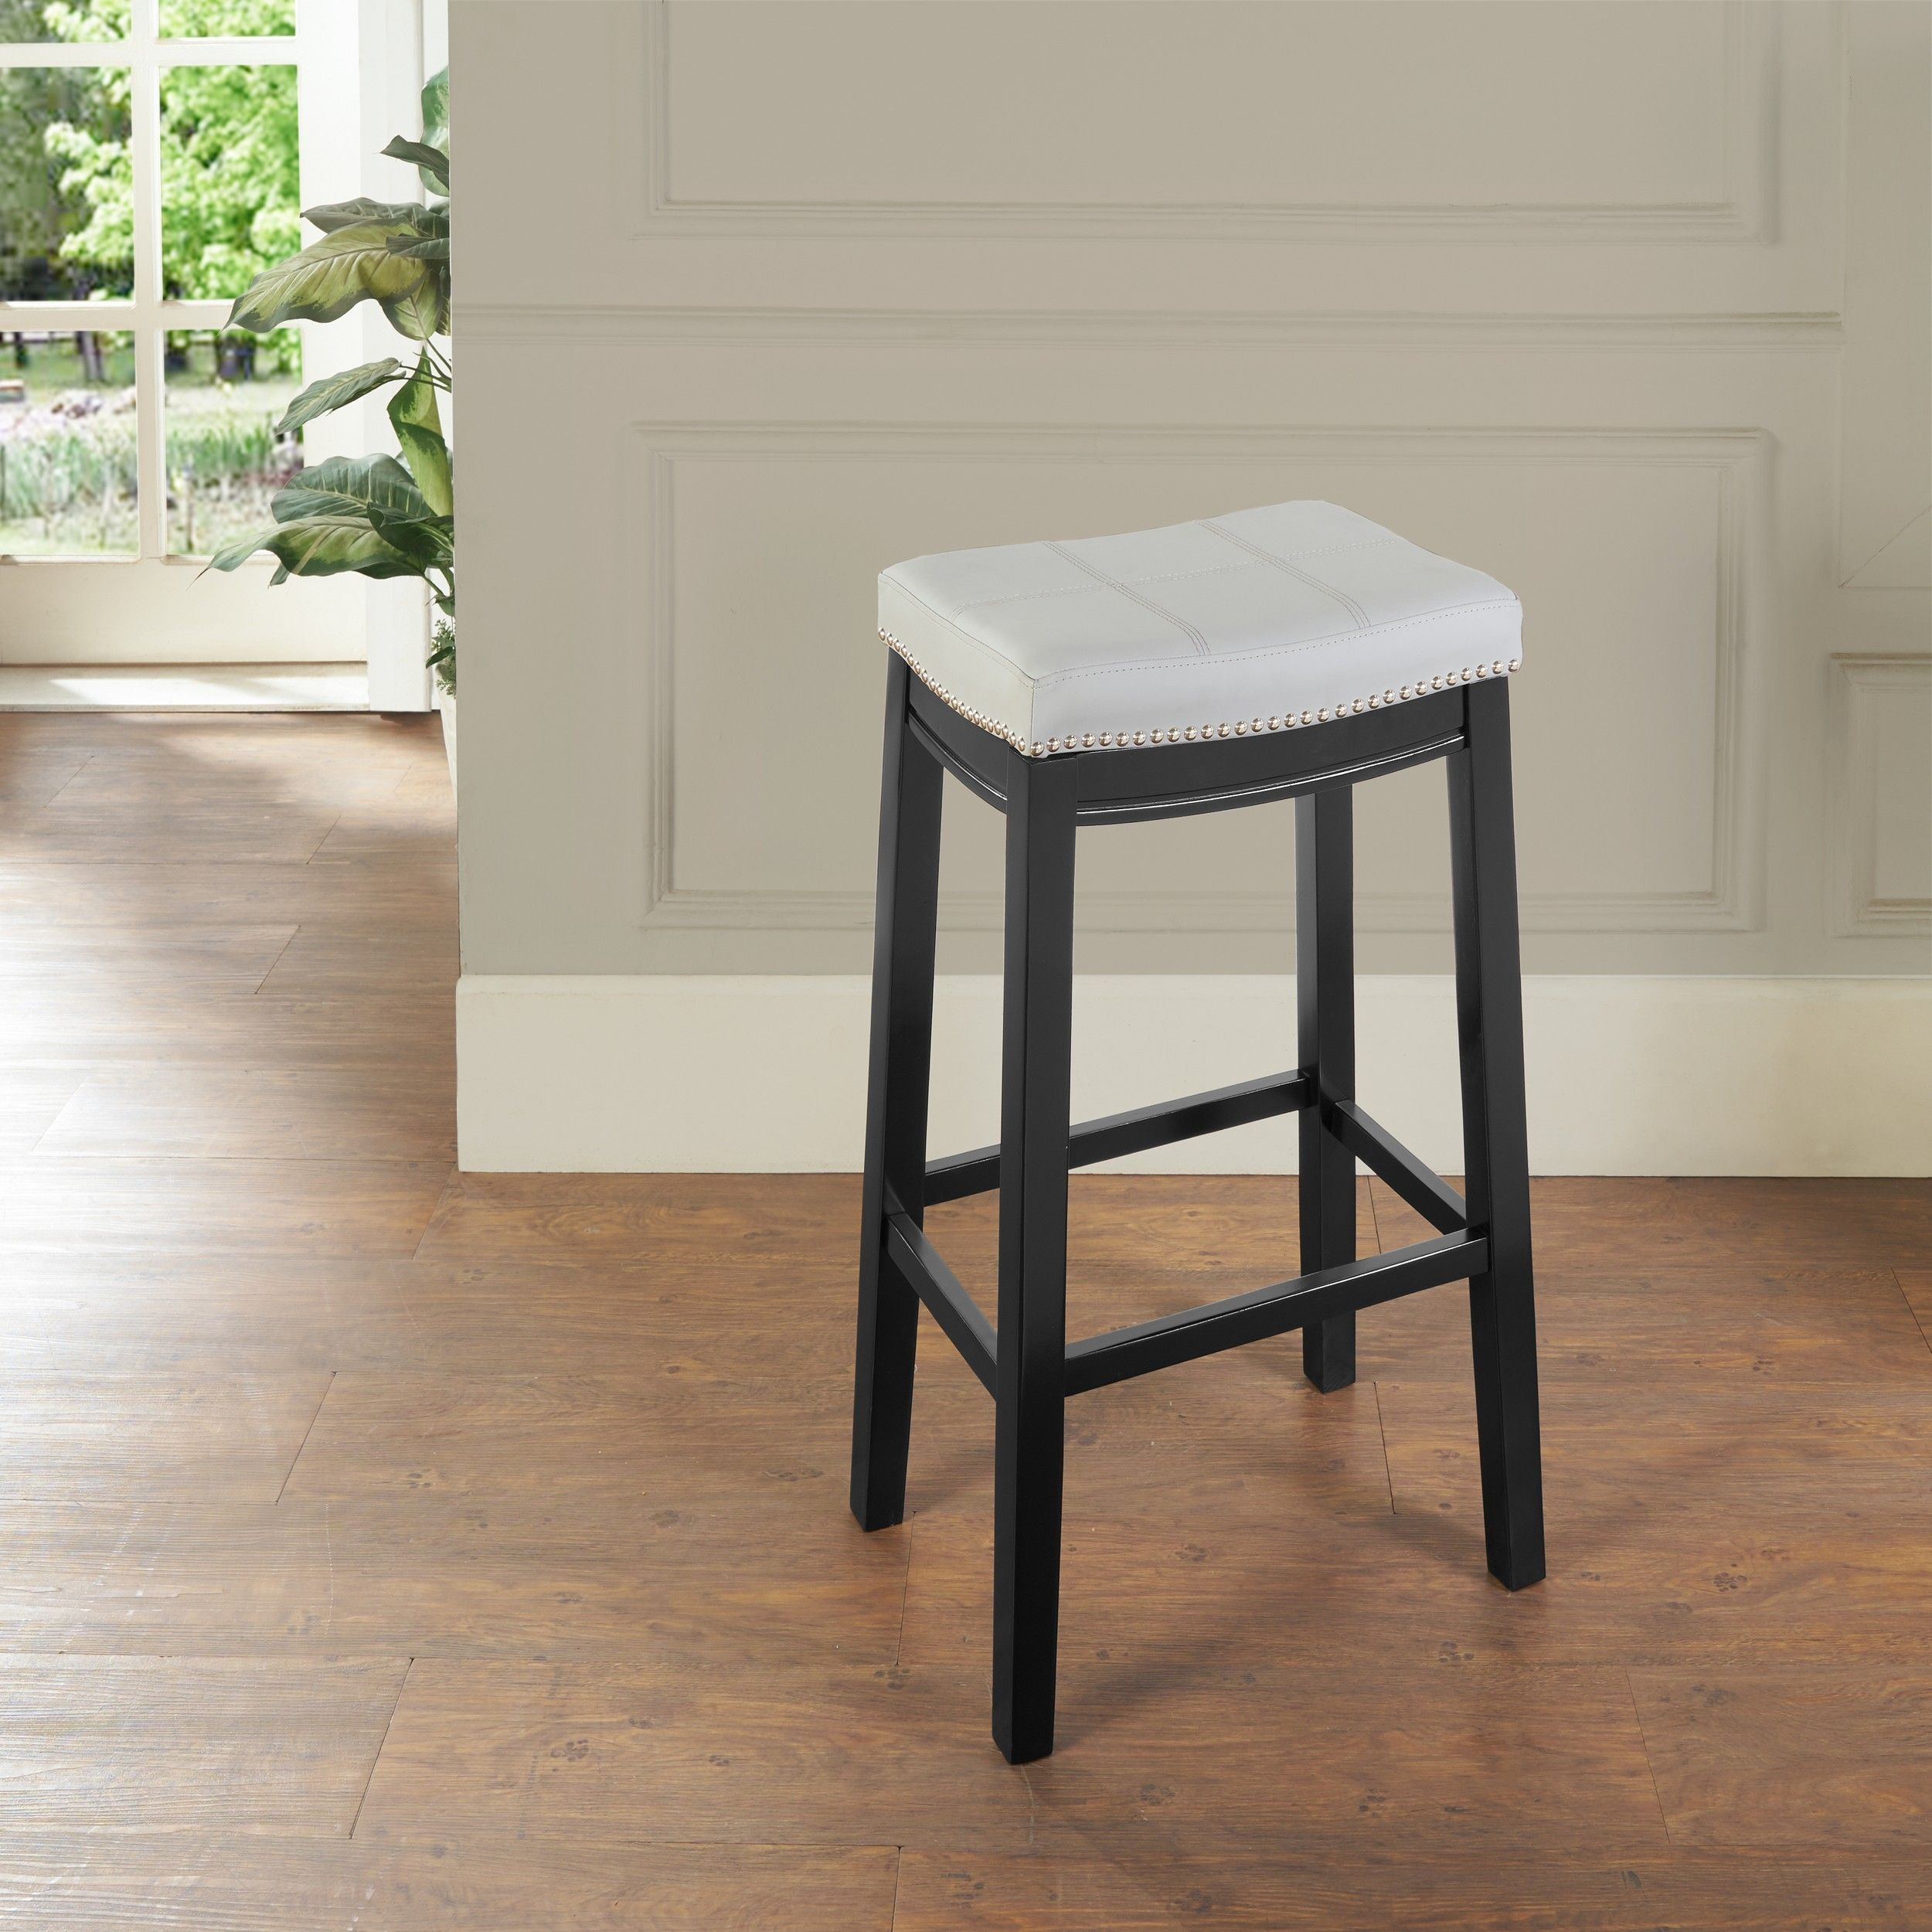 Lowest Price On Linon Home Decor Products Inc Claridge Multi Color Bar Stool Bs219gry01u